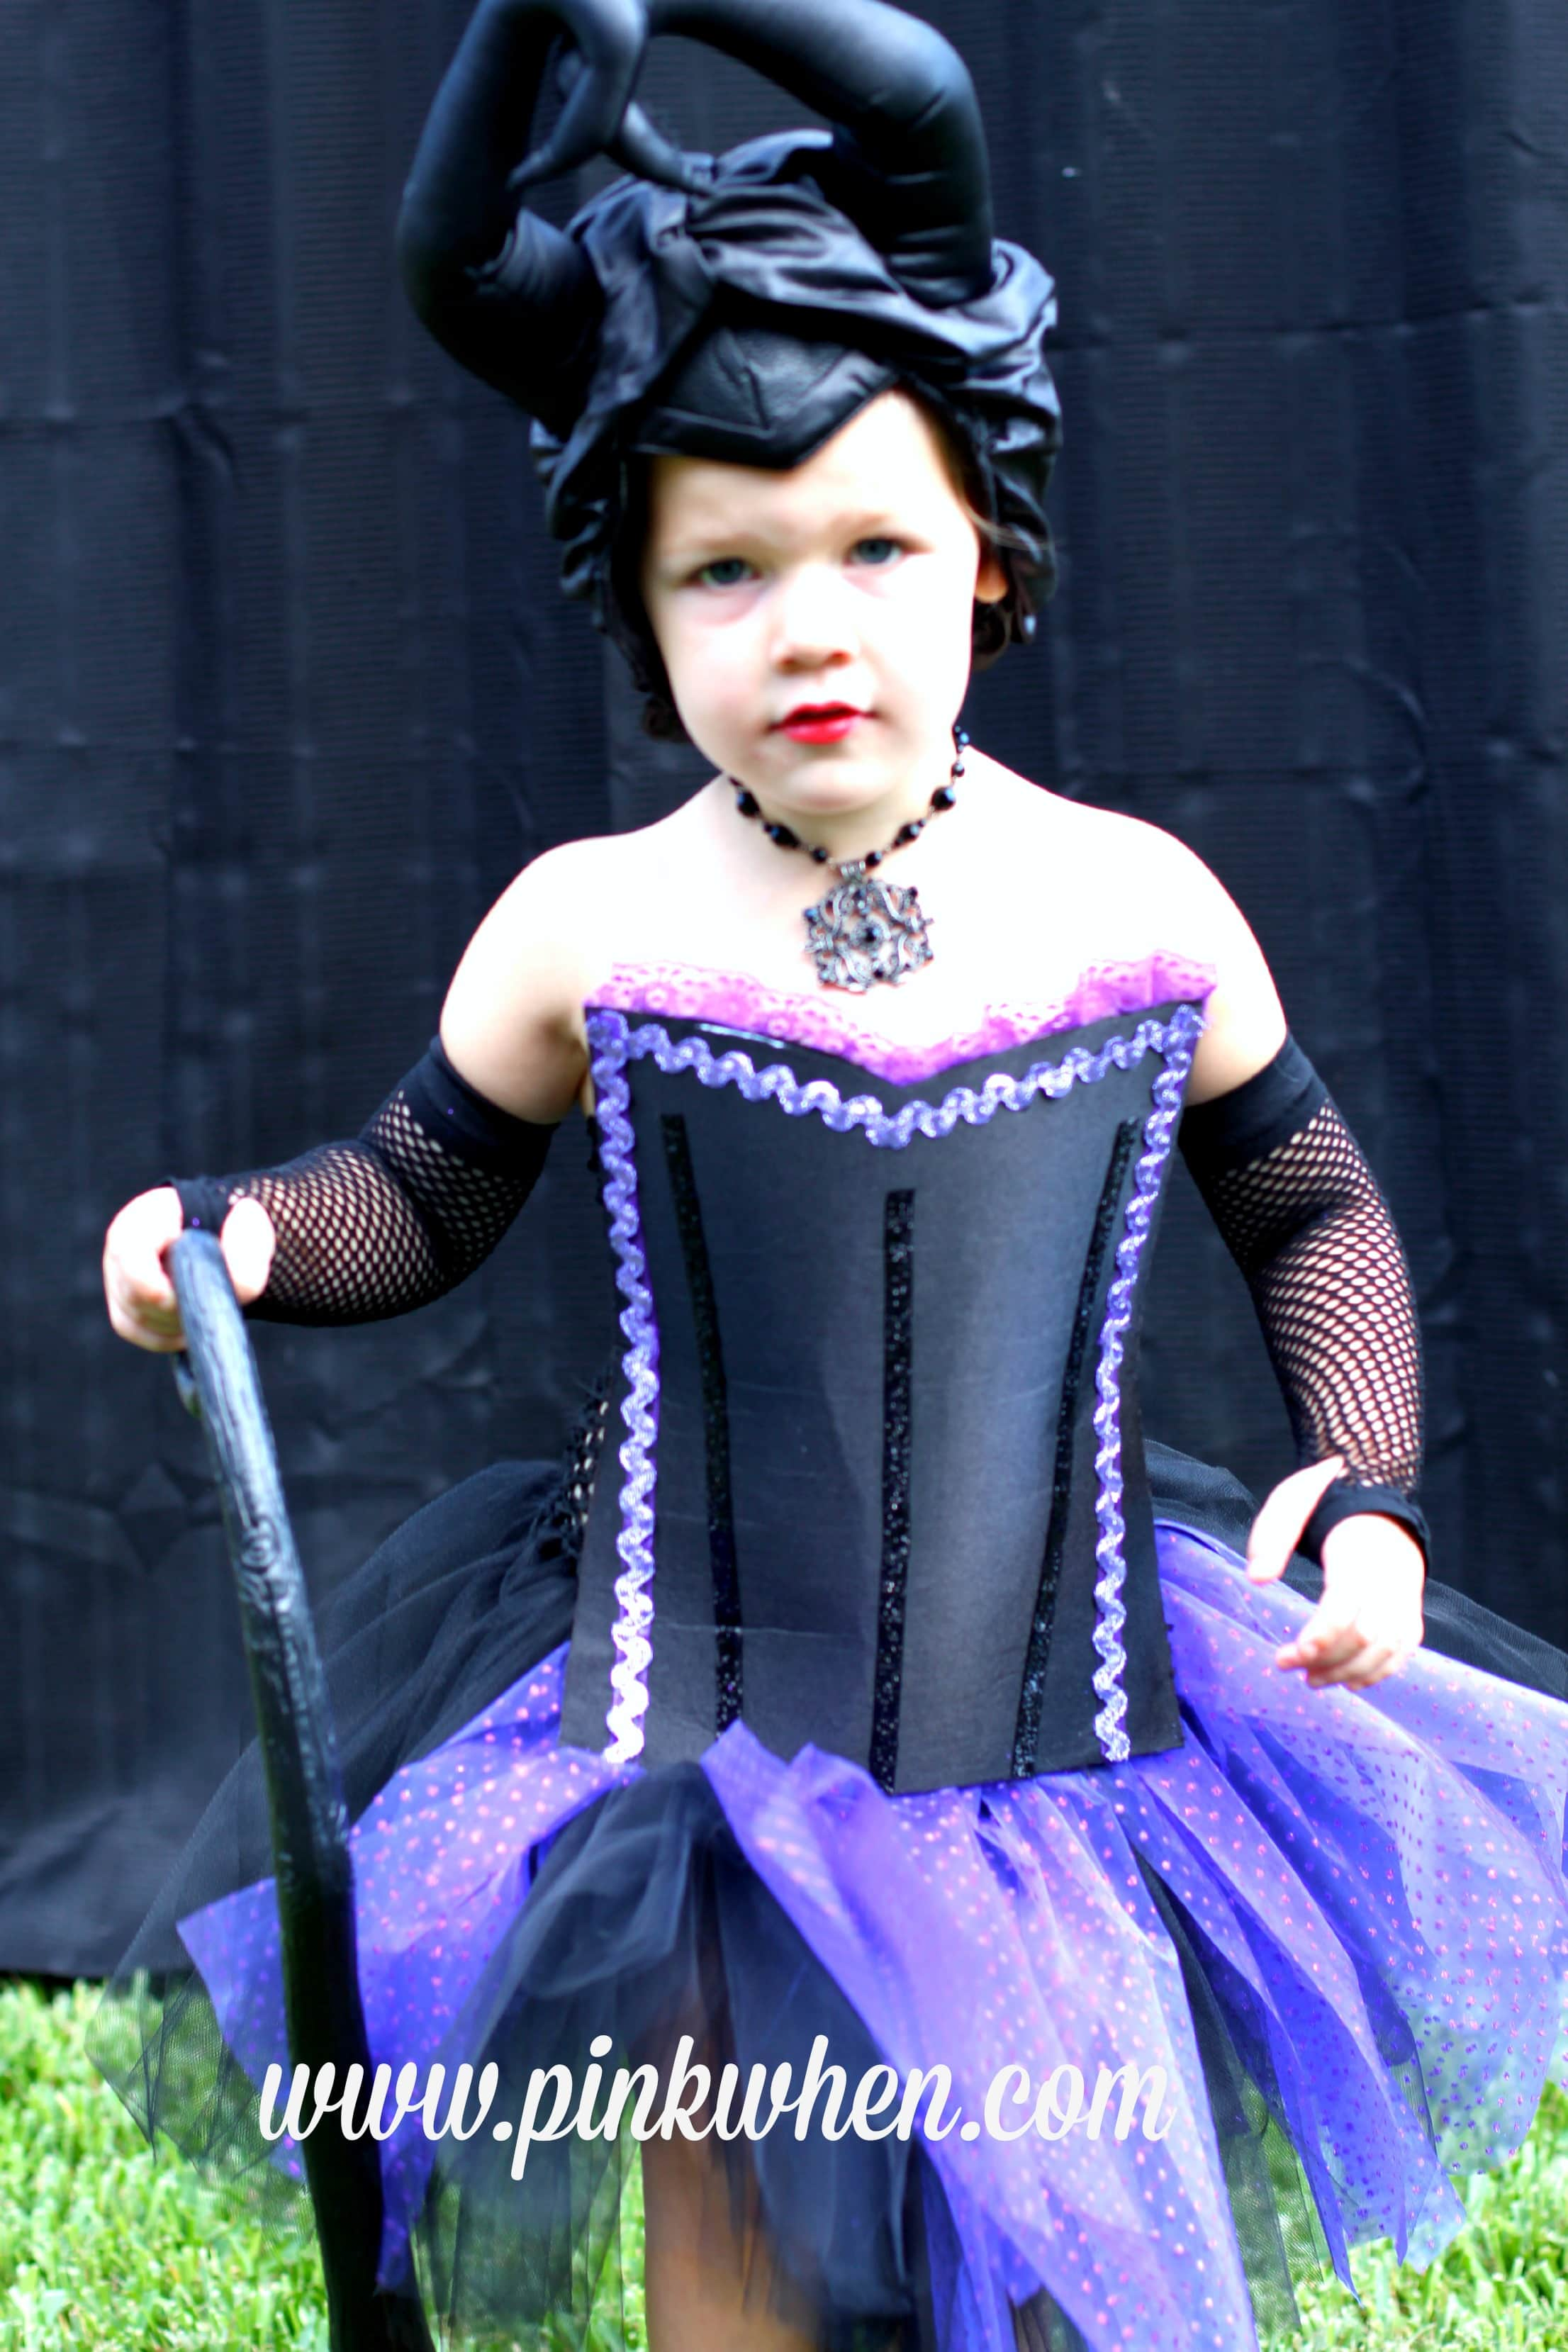 DIY No Sew Maleficent Costume  Page 2 of 2  PinkWhen